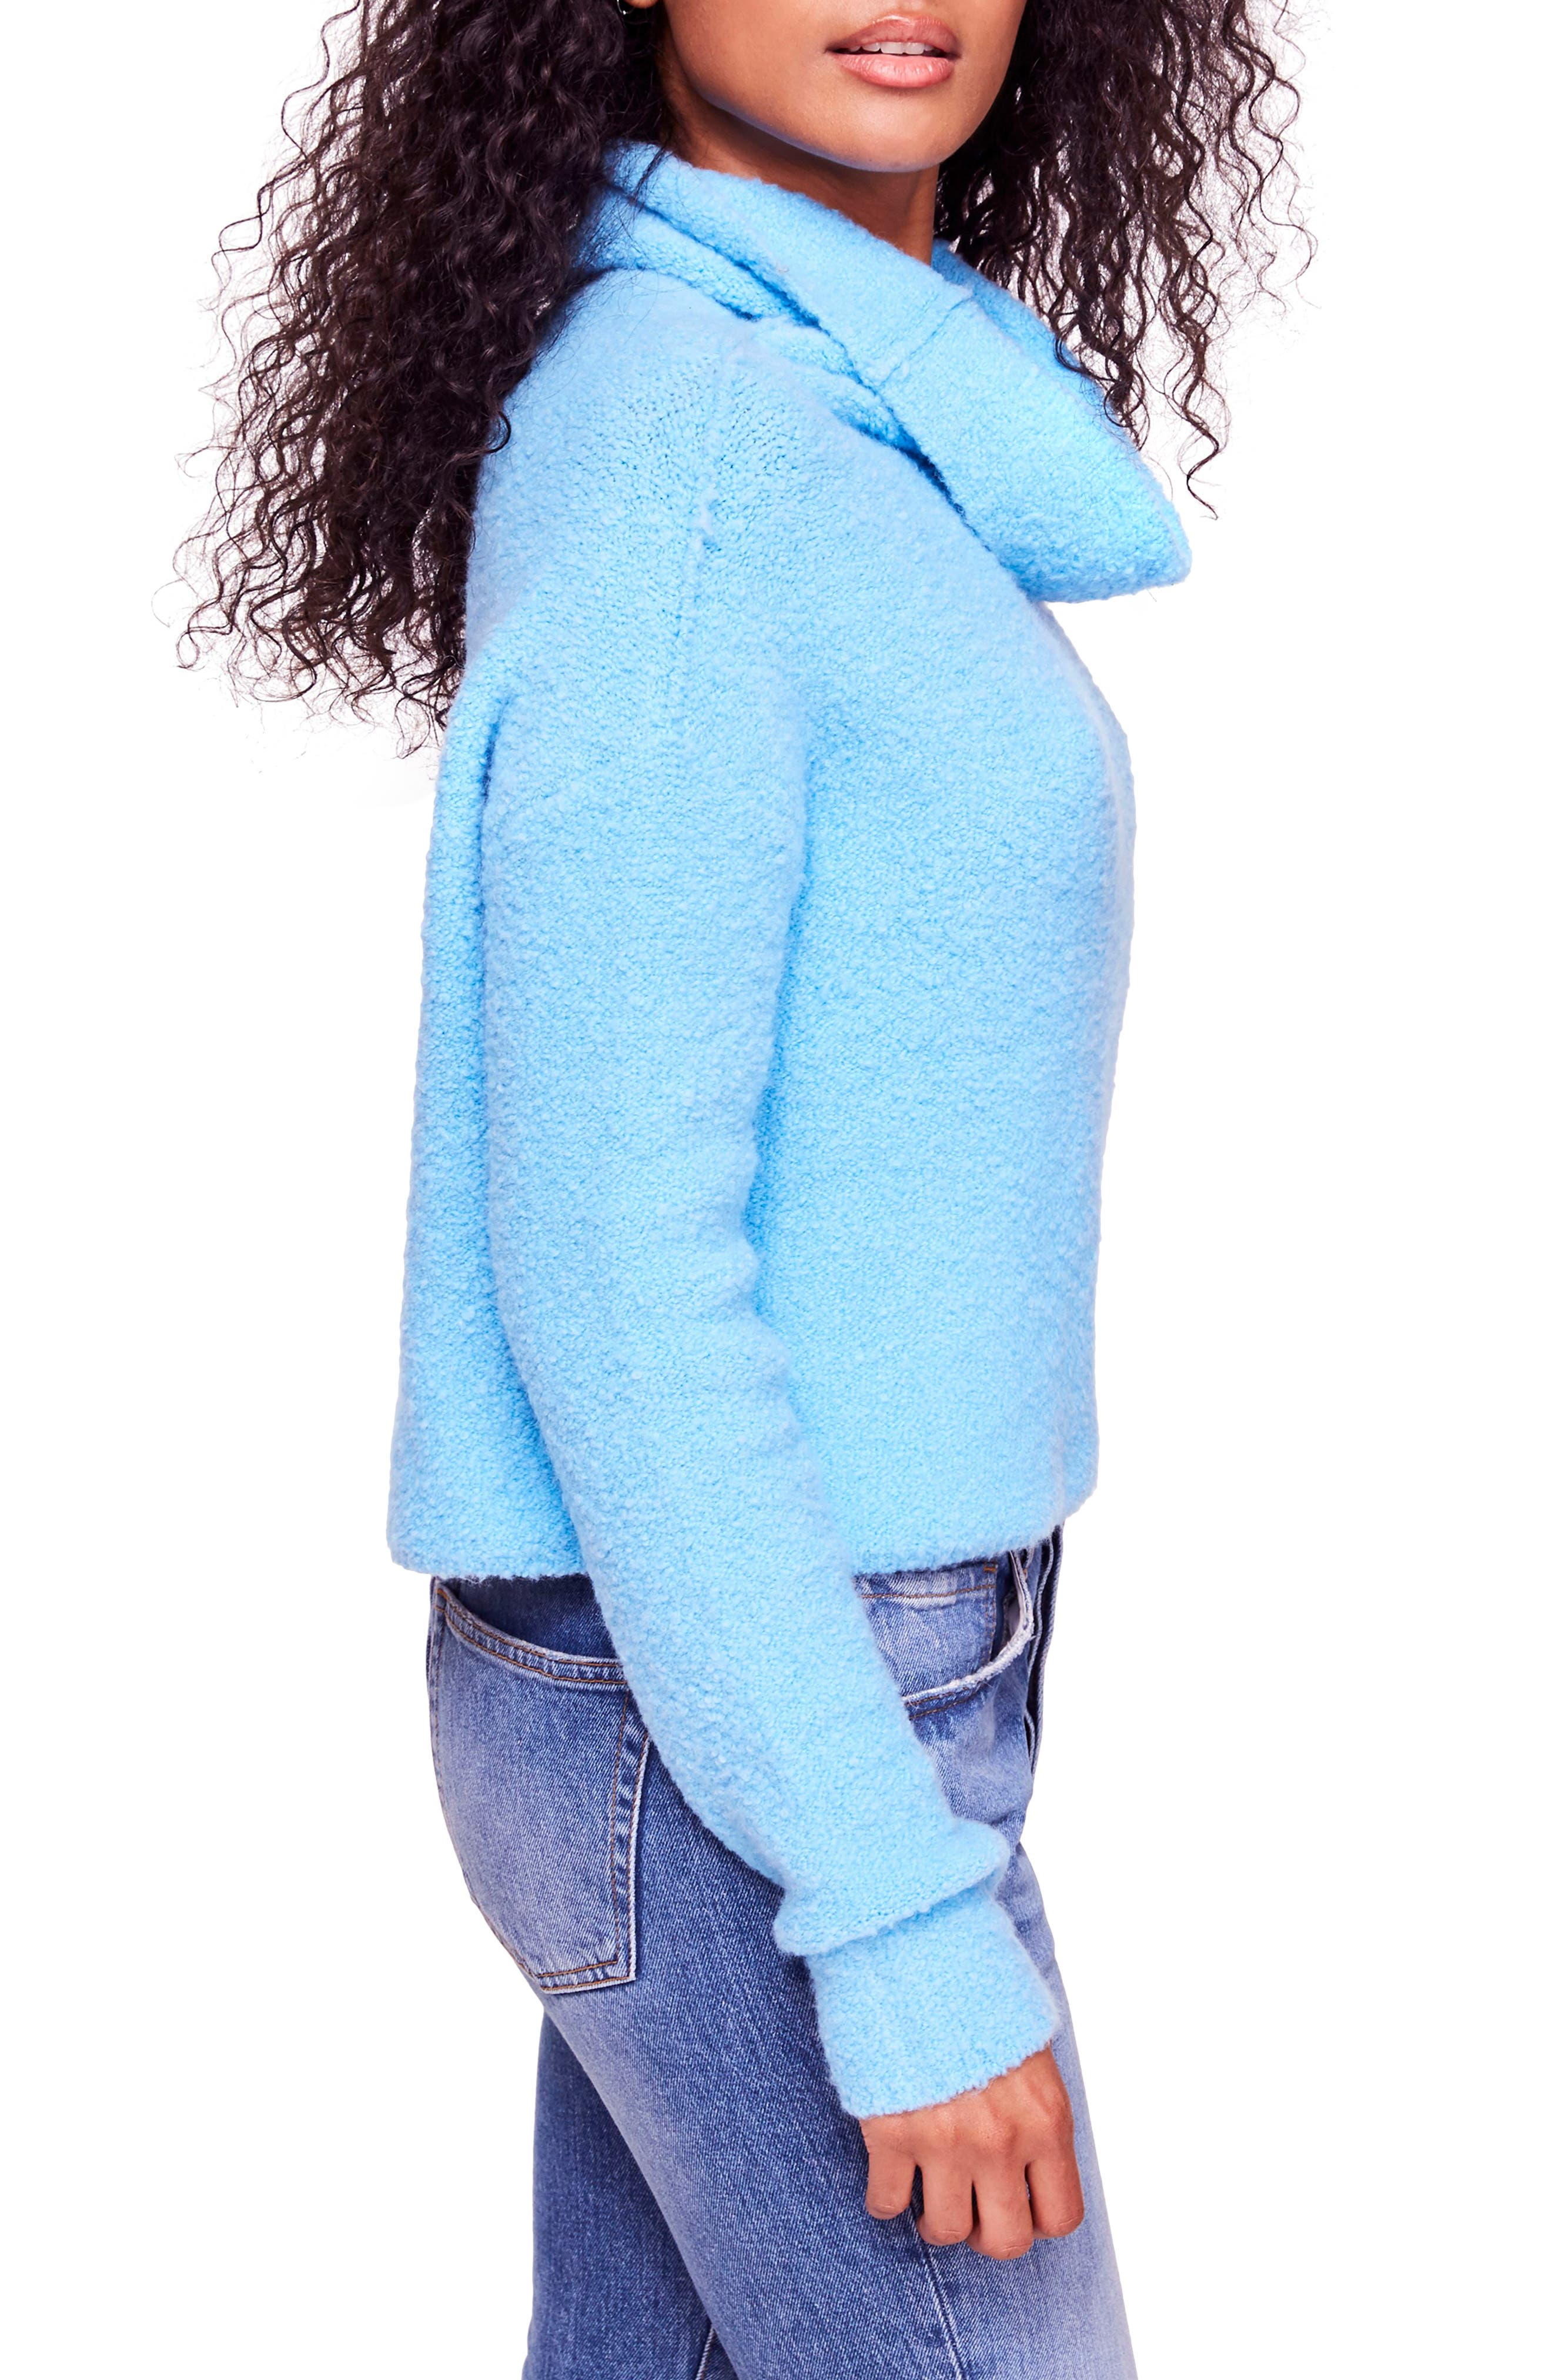 Stormy Cowl Neck Sweater,                             Alternate thumbnail 3, color,                             BLUE